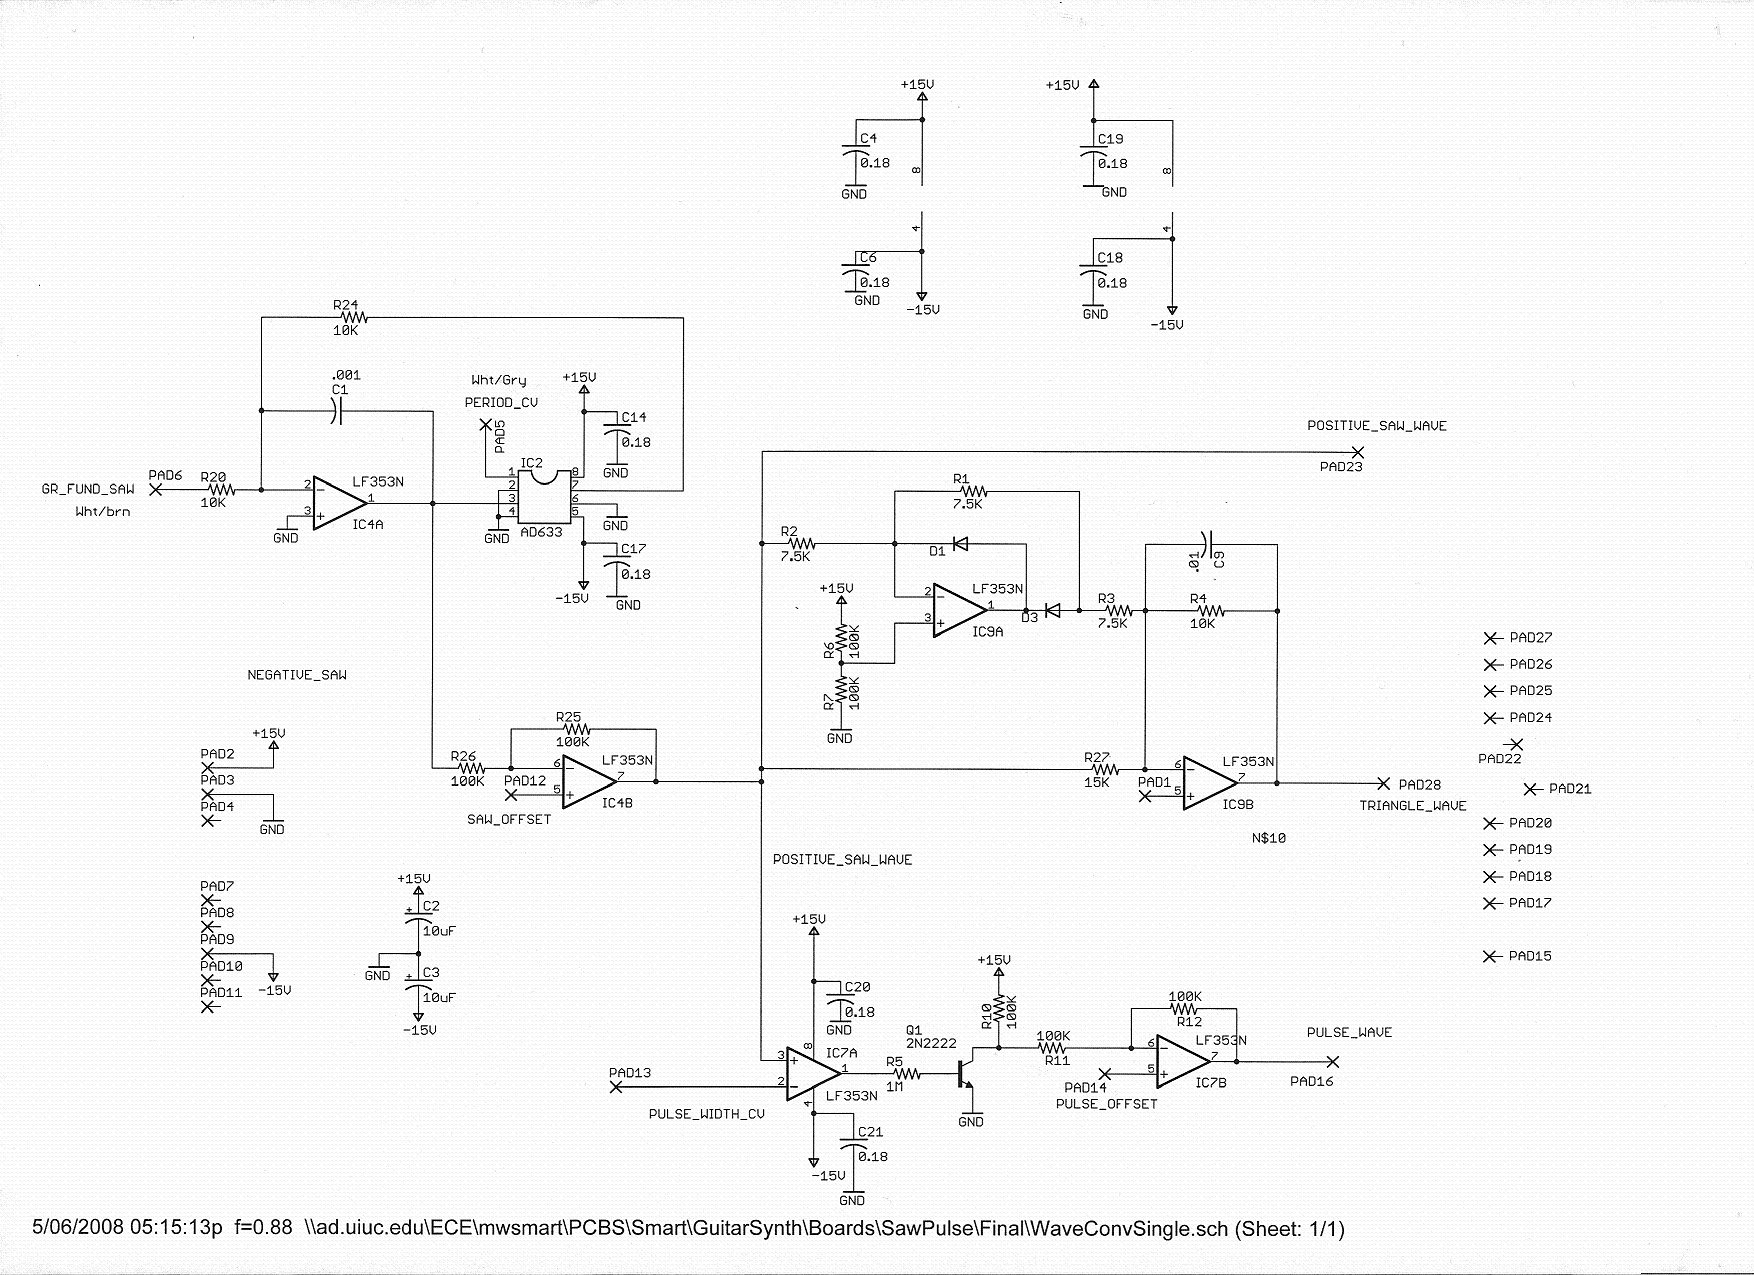 An Analog Guitar Synthesizer Based Around The Roland Gr 300 Envelope Follower Schematic Circuit Has Three Parts Each Part Offset Adjustment So Waveform Can Be Set To Oscillate 75 Volts Facilitating Later